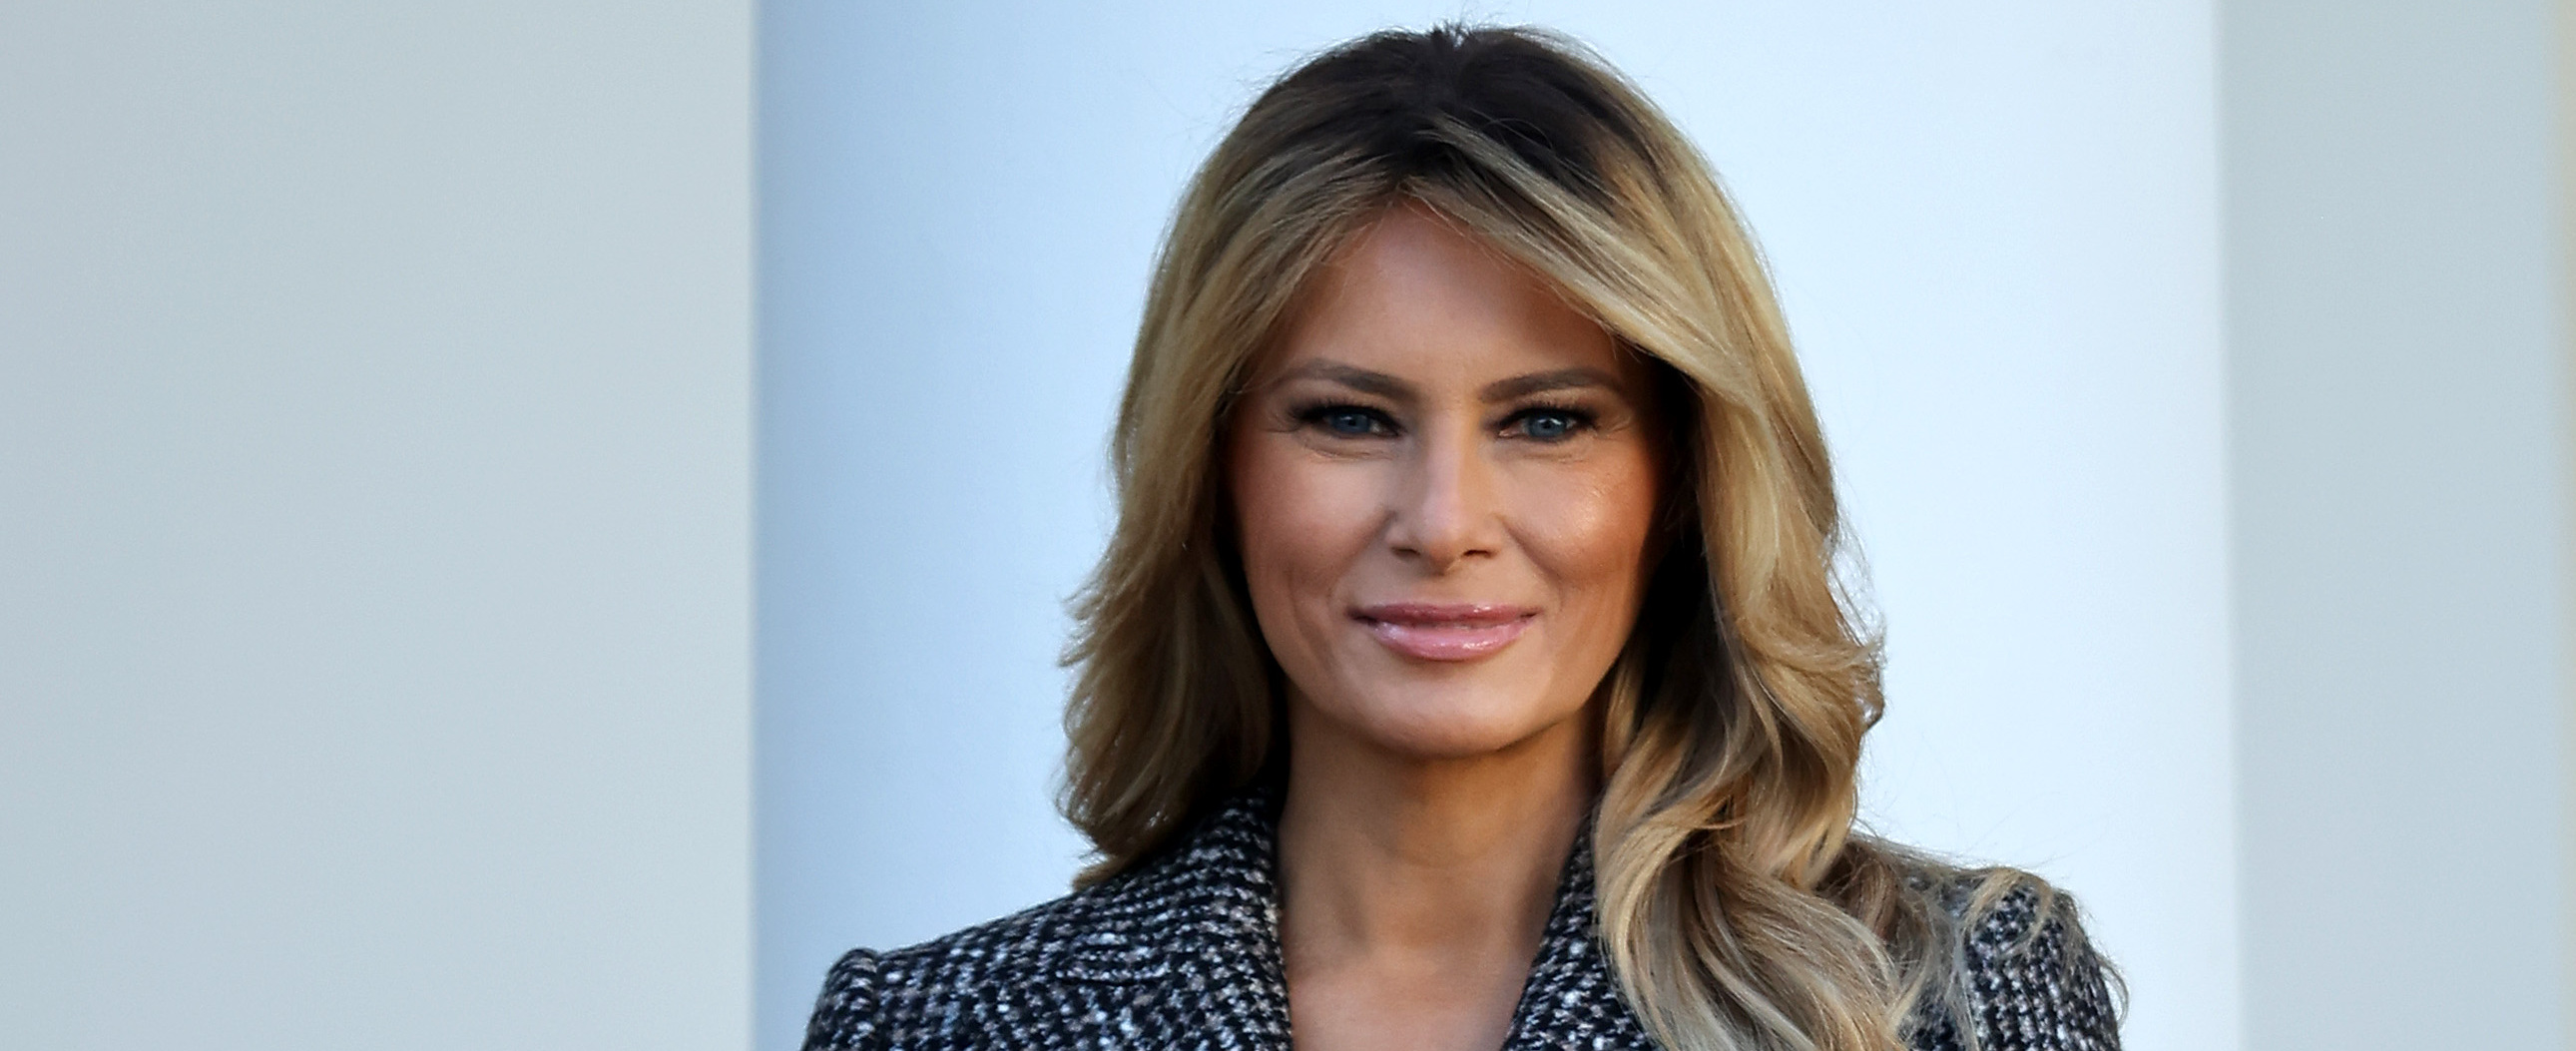 Report: Melania Trump May Write Memoir